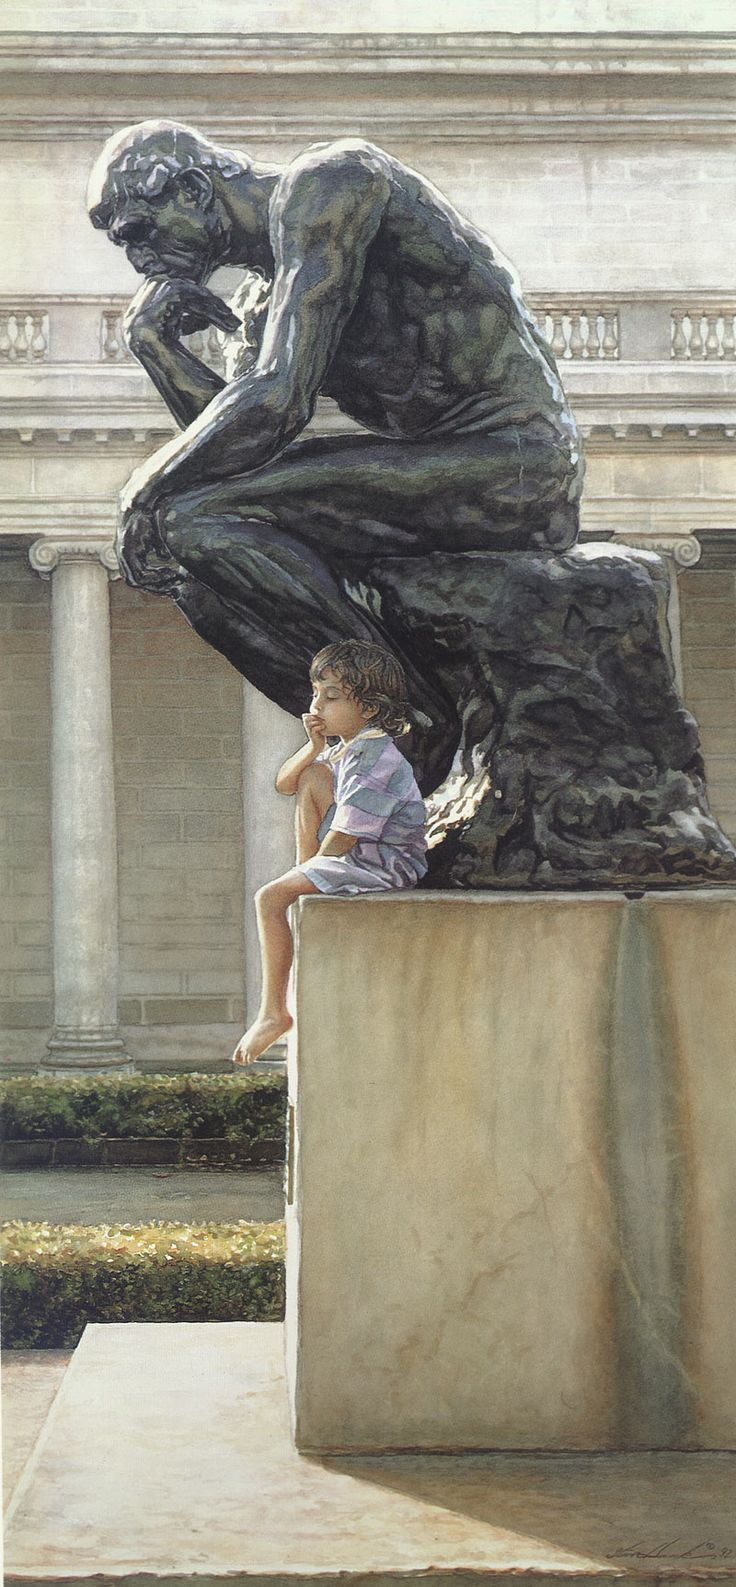 The Thinker. Steve Hanks PAINTING of a wee boy posing while seated on the famous masterpiece by sculptor Rodin = Sculpture entitled 'The Thinker ' ⭐️